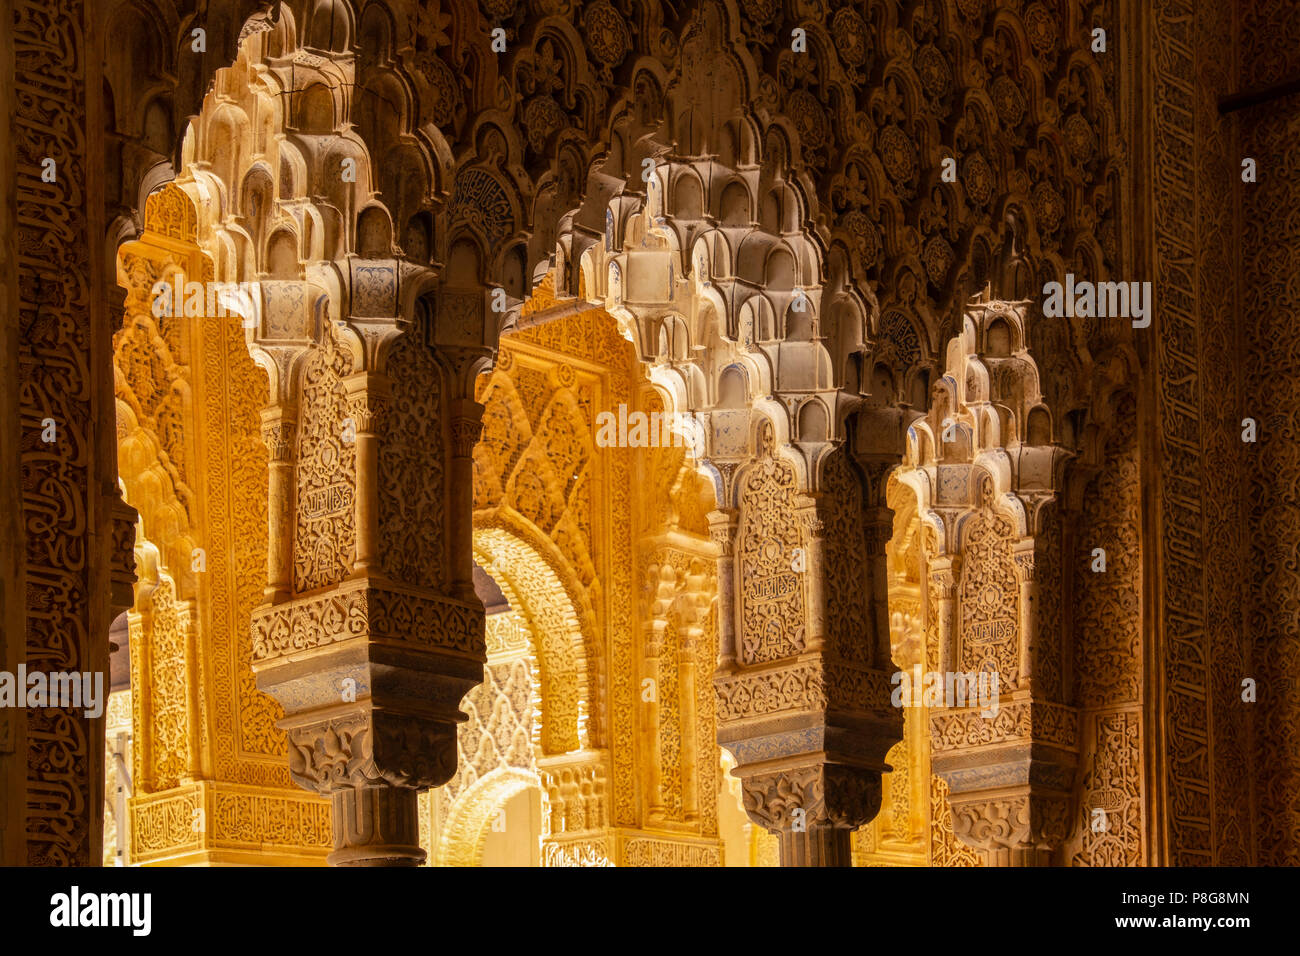 Patio de los Leones, Court of the Lions. Alhambra, UNESCO World Heritage Site. Granada City. Andalusia, Southern Spain Europe Stock Photo